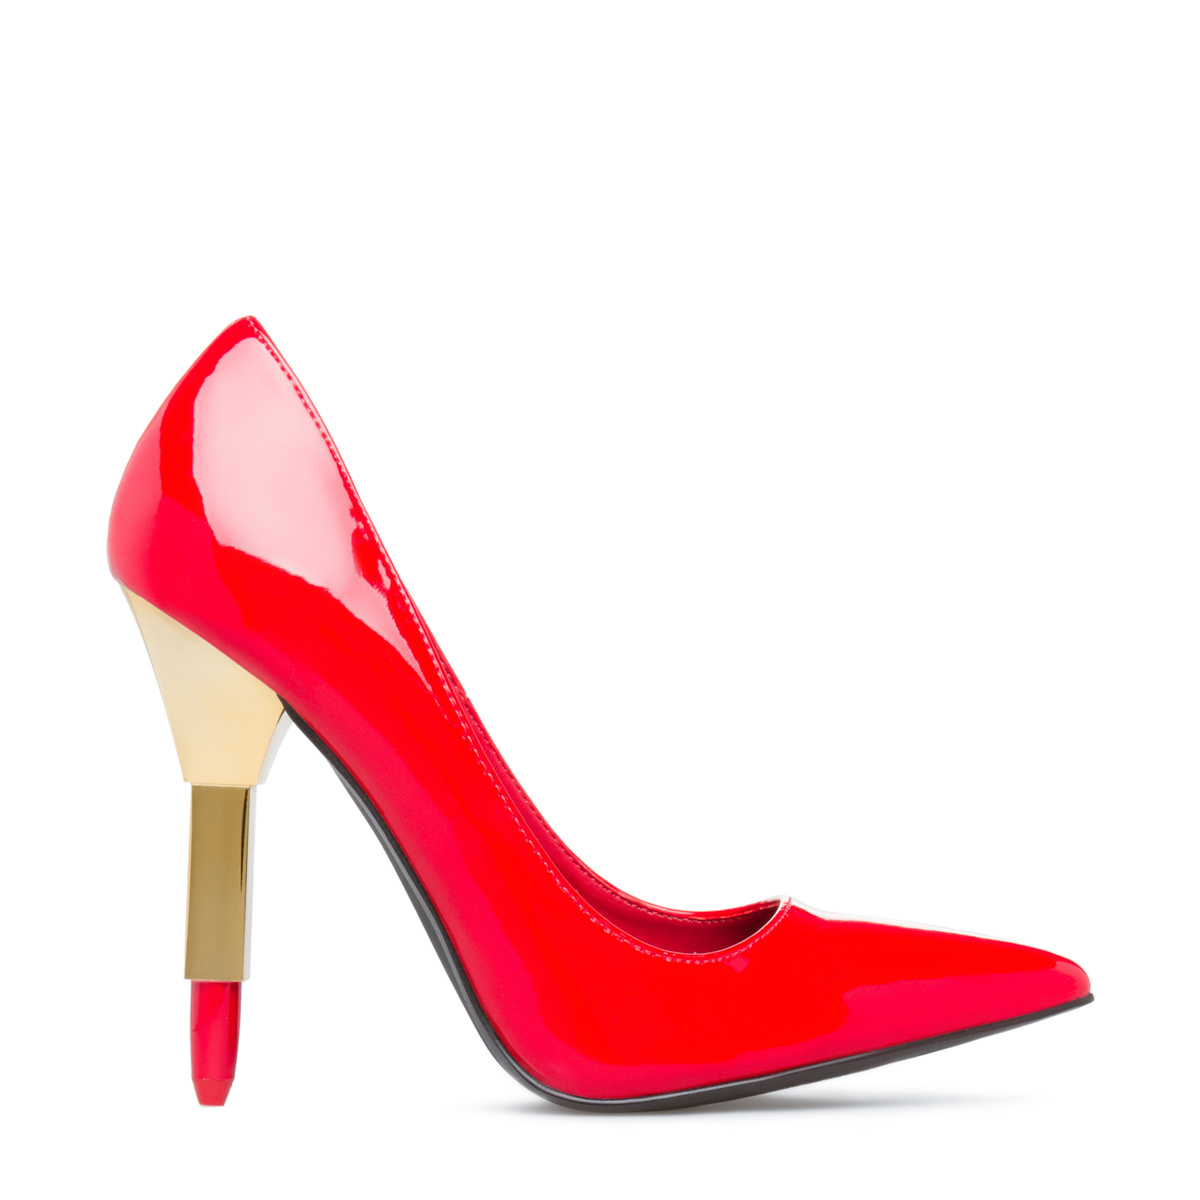 Shoedazzle lipstick pumps